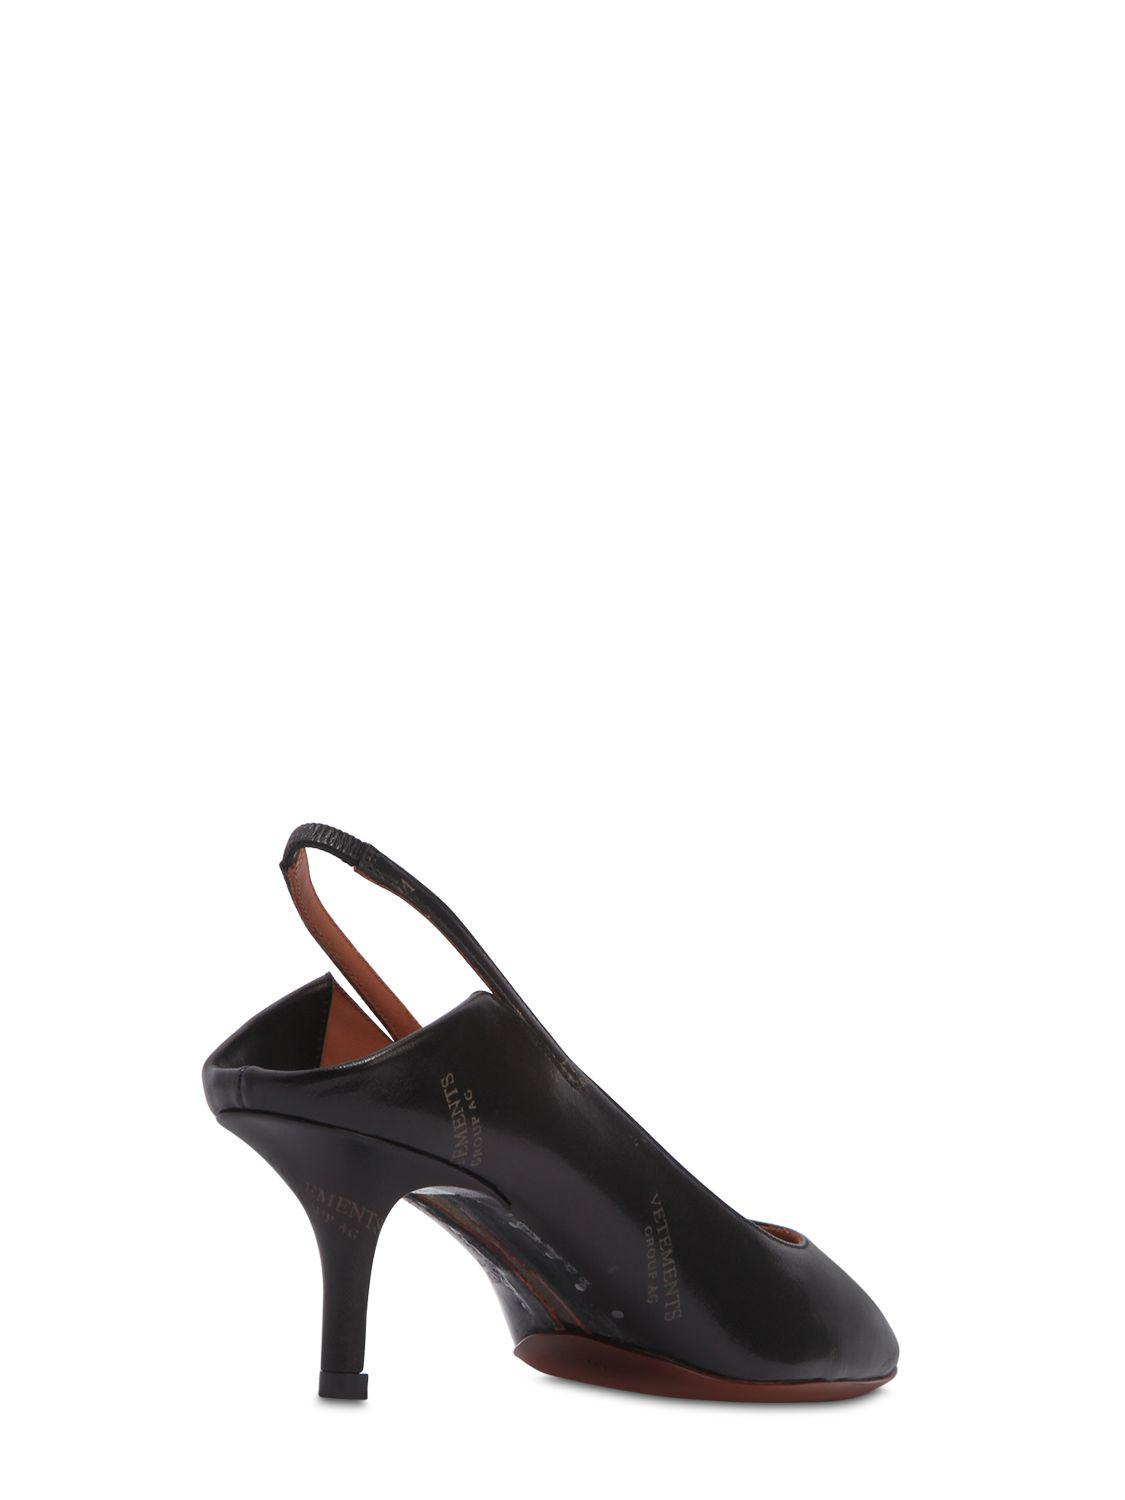 Vetements 60MM BABOUCHE SATIN SLINGBACK PUMPS Free Shipping Eastbay Free Shipping Pay With Visa jZEu8BF